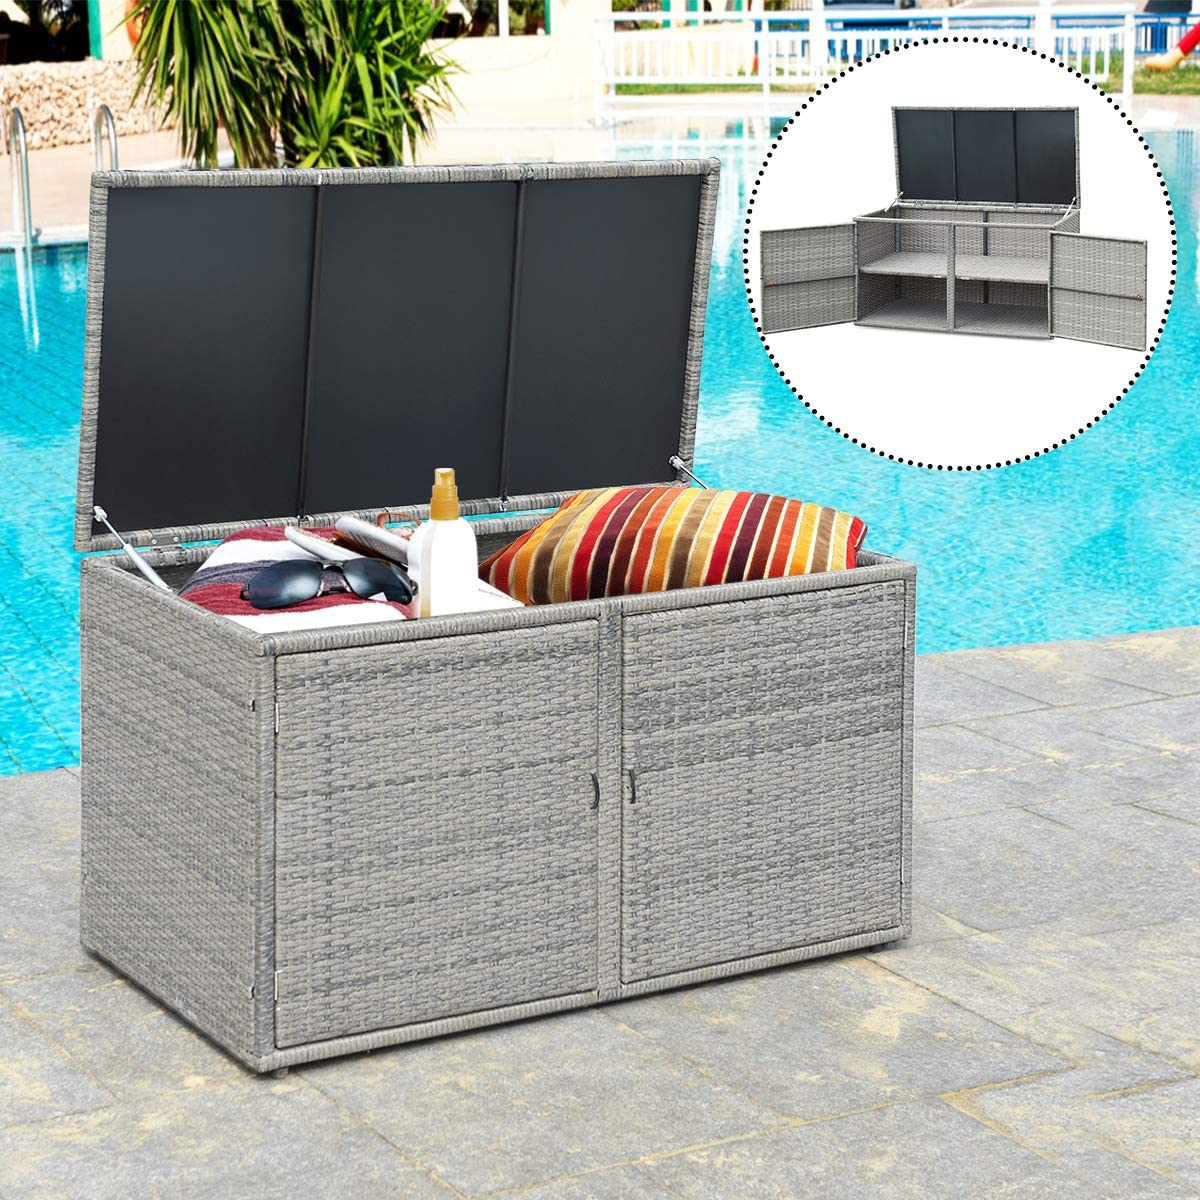 Amazon Com Tangkula Outdoor Wicker Storage Box Garden Deck Bin With Steel Frame Rattan Pool Storage Box With Lid Ideal For Storing Tools Accessories And Toys 88 Gallon Capacity Grey Home Improvement